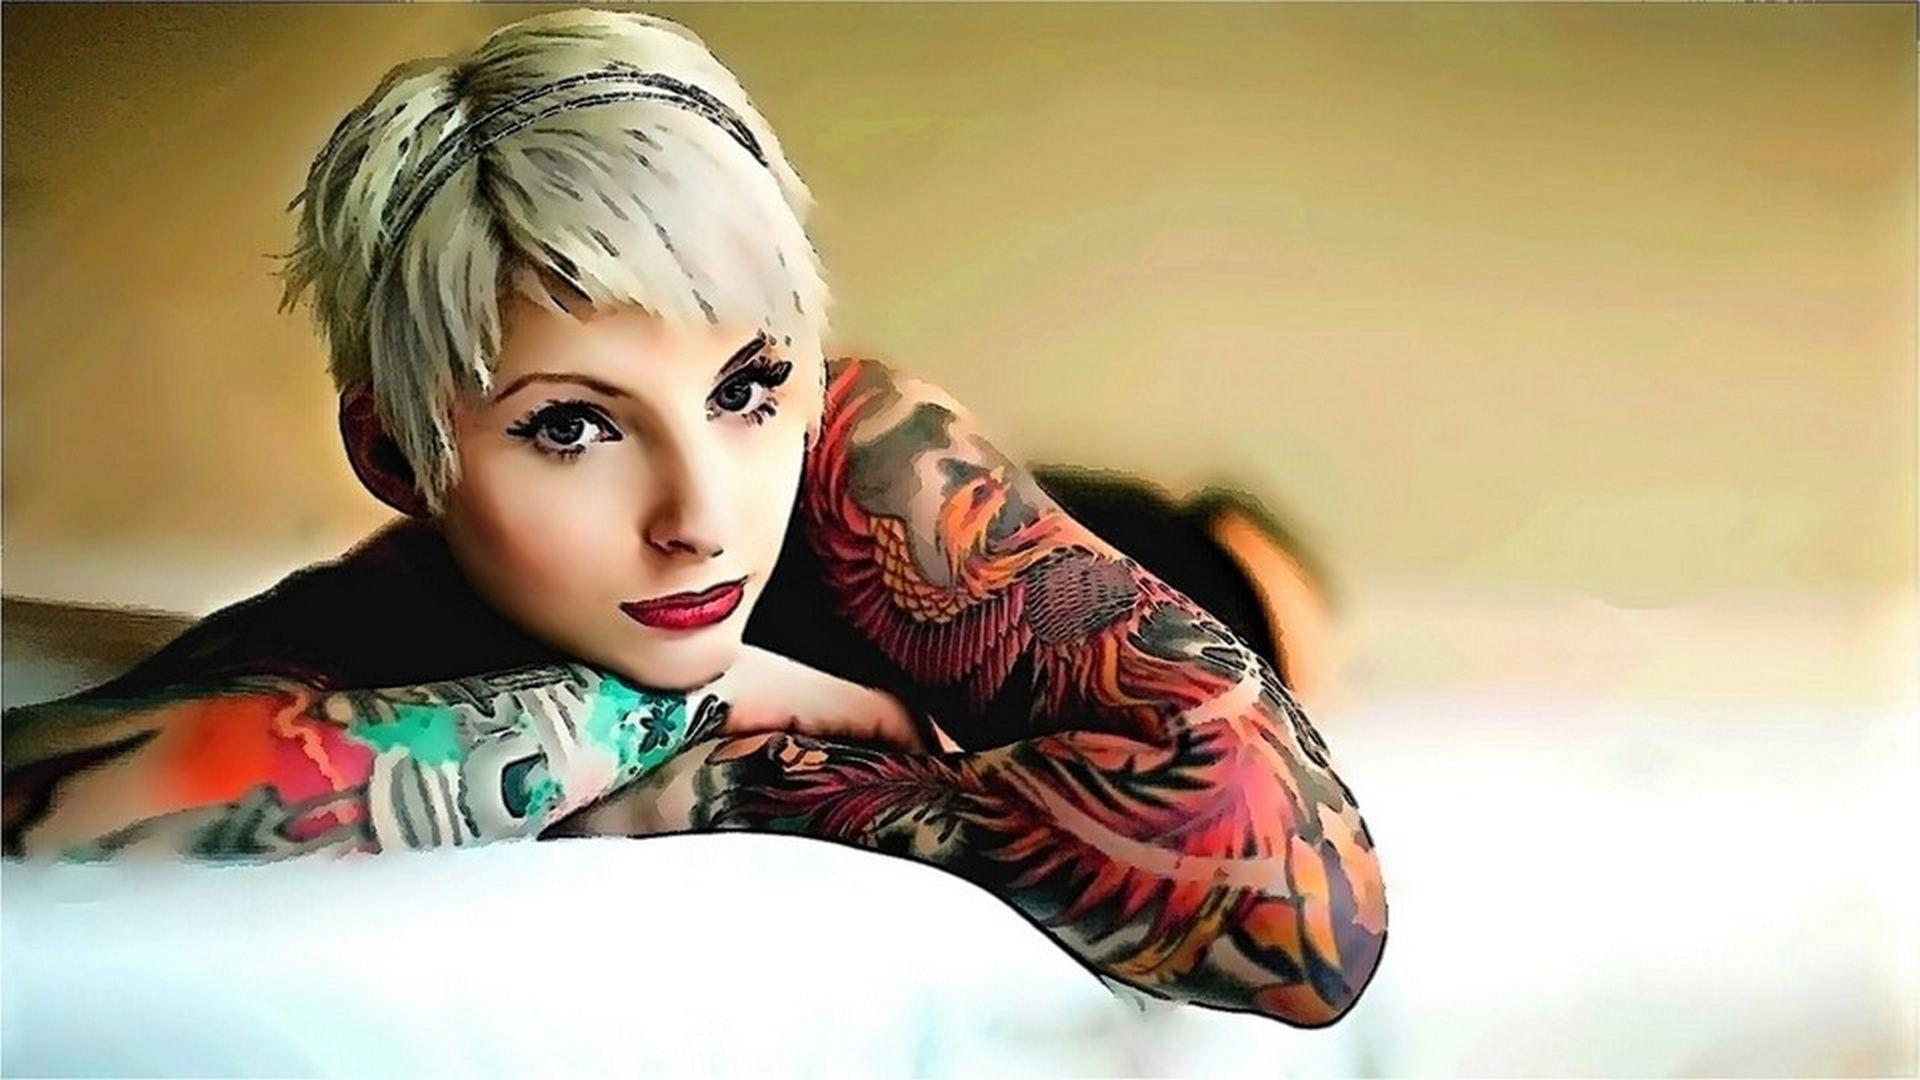 Tattoo Girl Wallpapers Wallpaper Cave